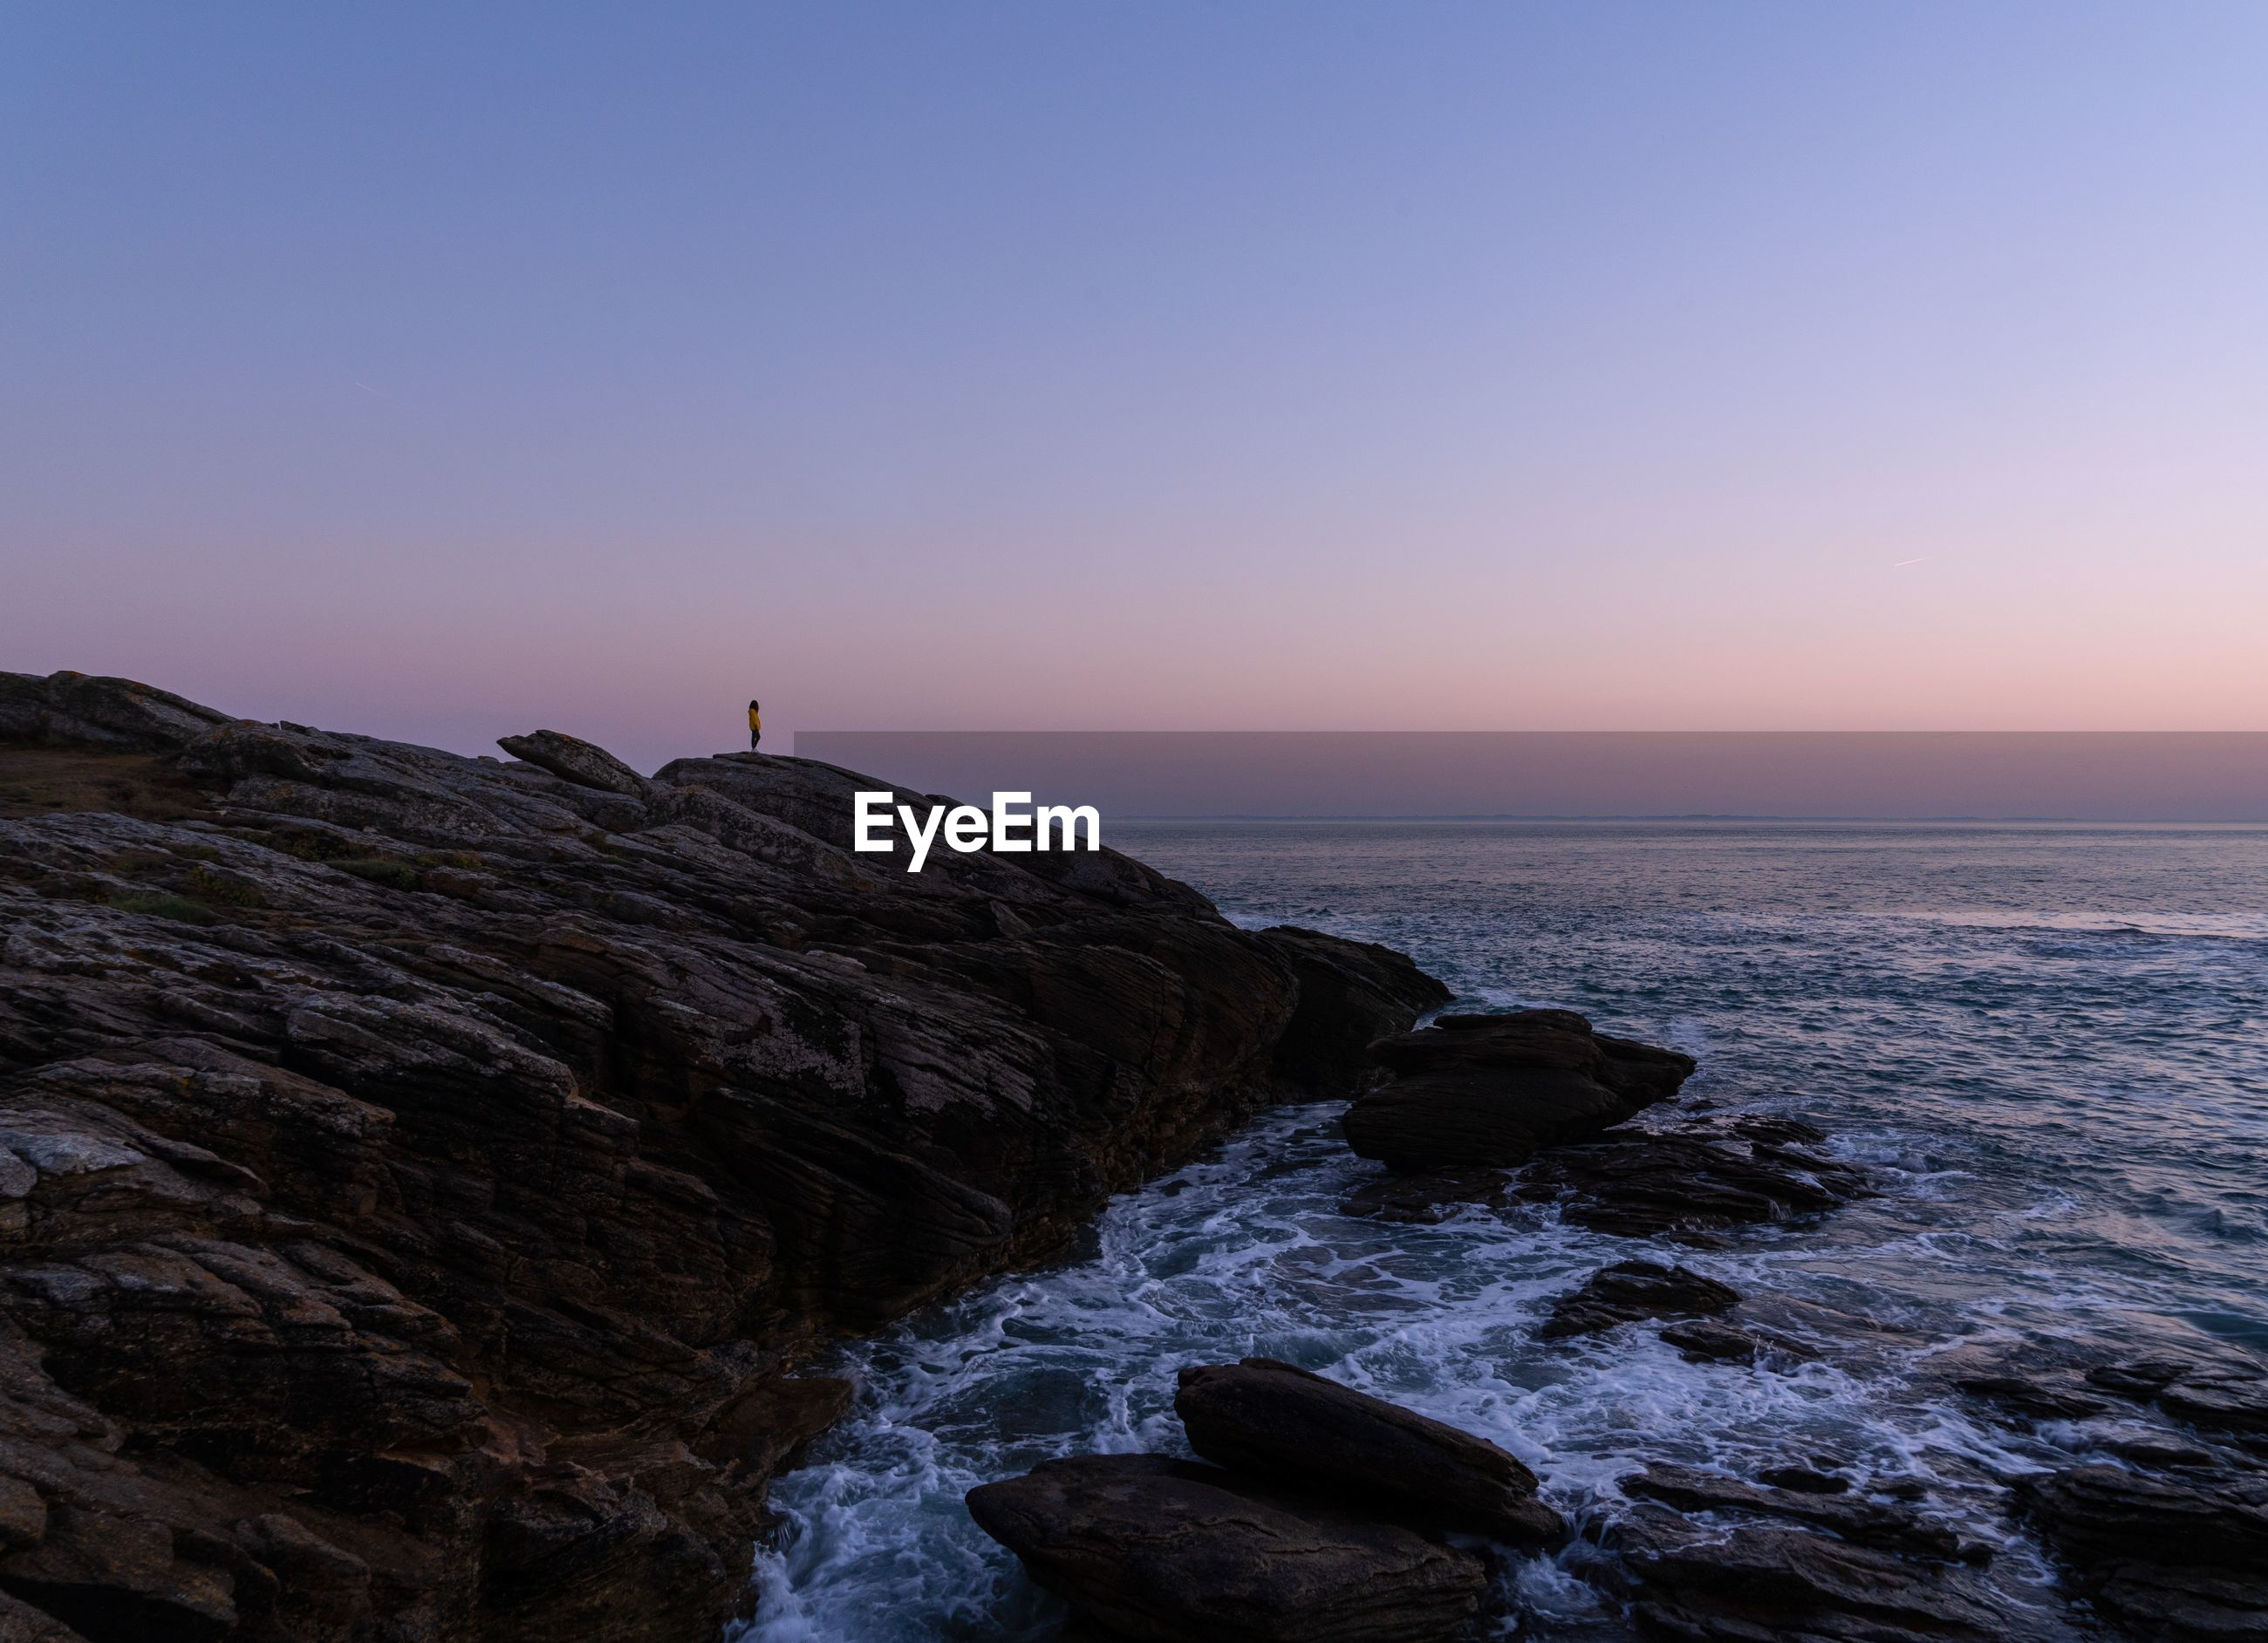 sky, sea, beauty in nature, scenics - nature, rock, water, sunset, rock - object, horizon over water, horizon, solid, tranquility, tranquil scene, non-urban scene, copy space, nature, motion, idyllic, rock formation, no people, outdoors